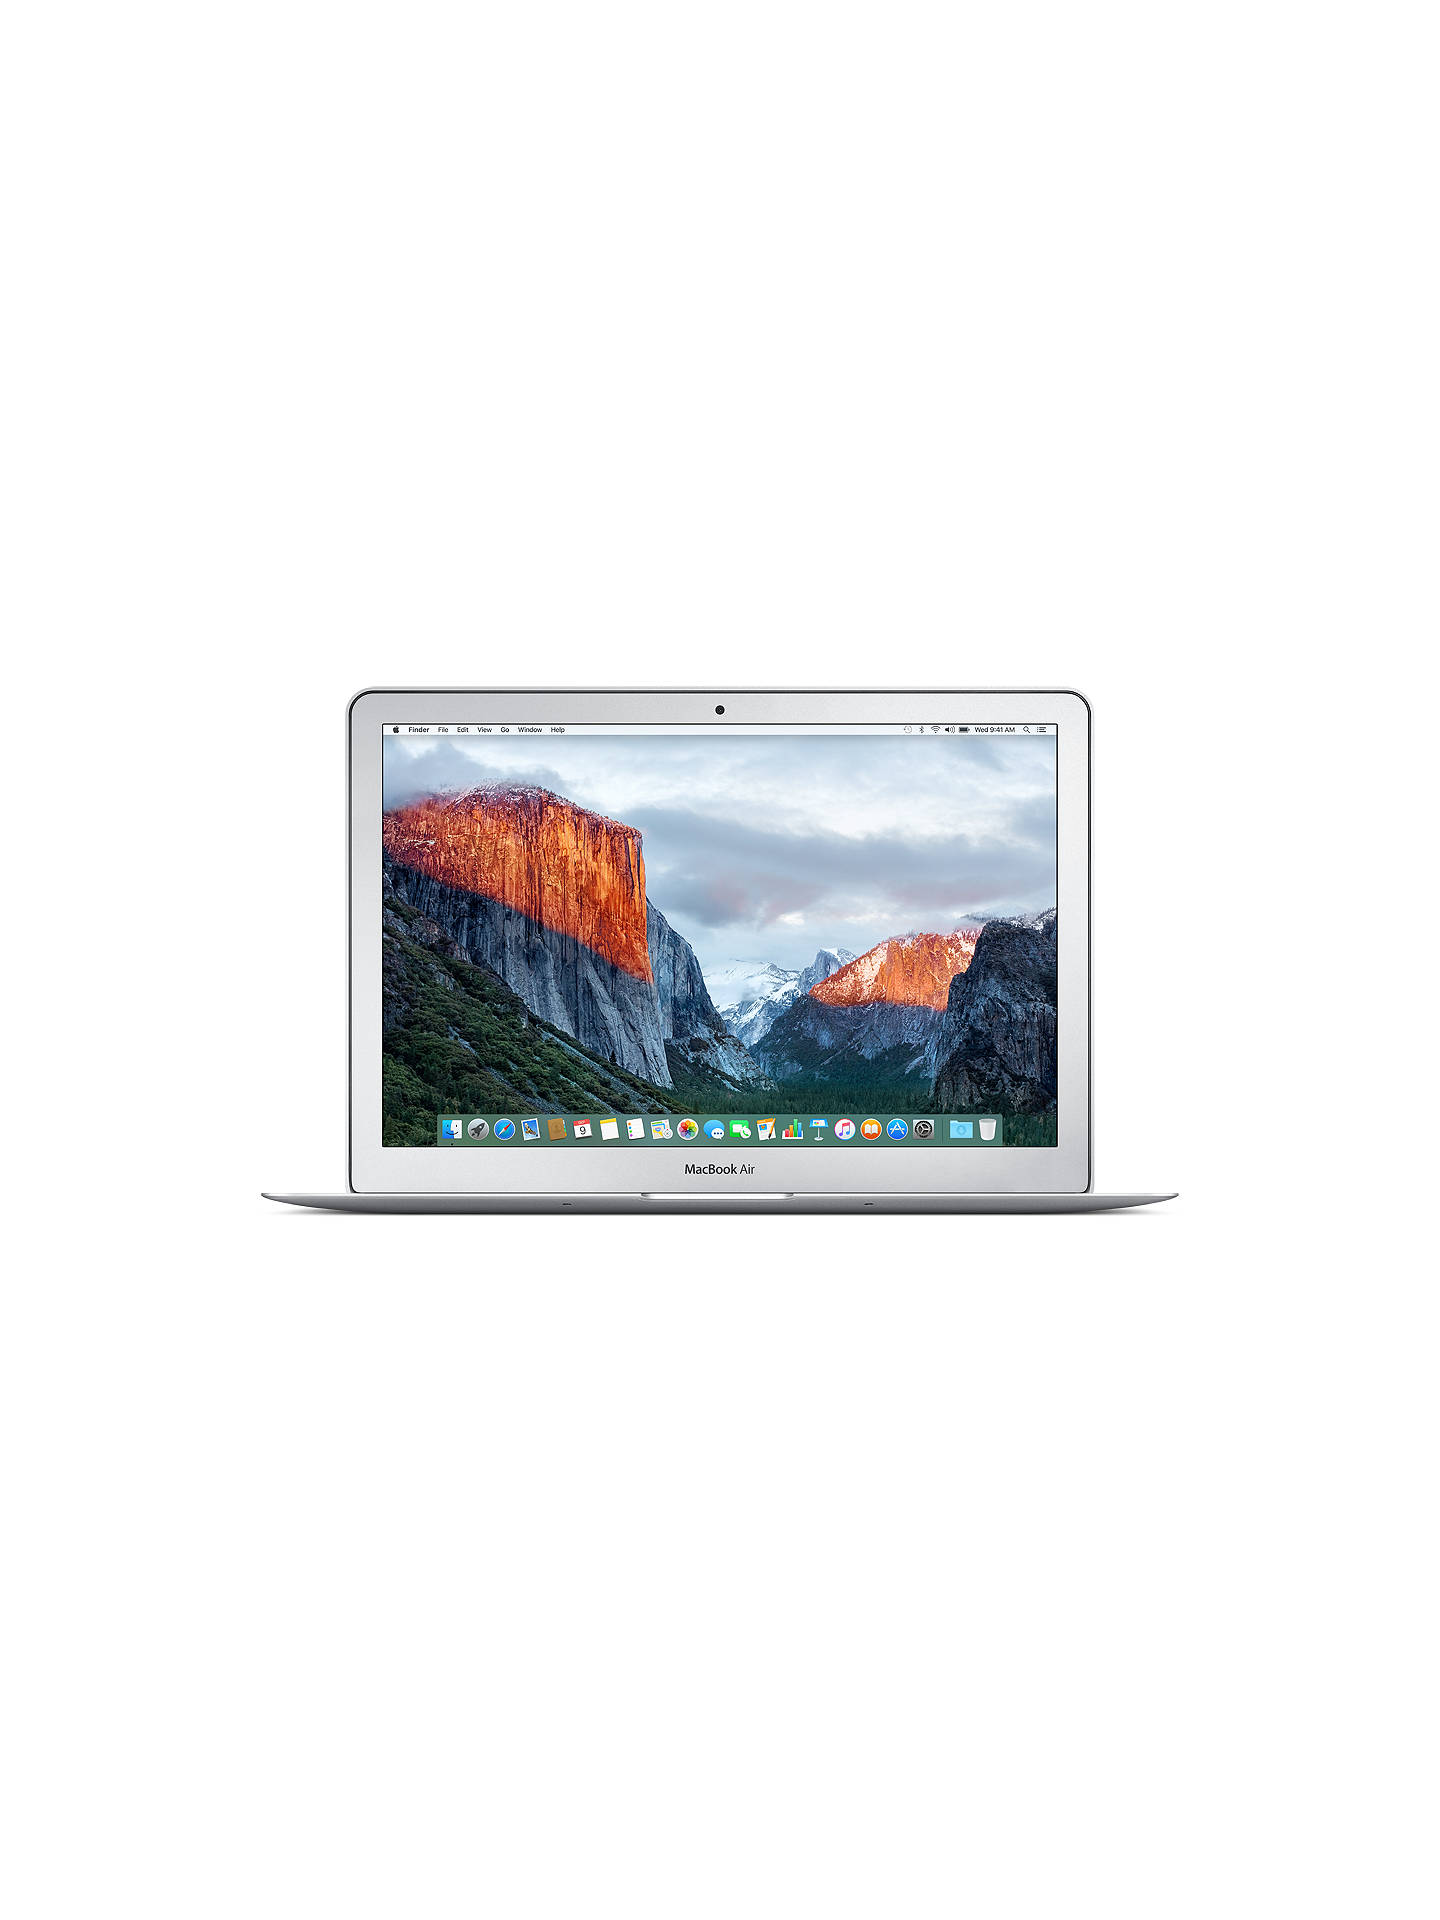 Apple Macbook Air Intel Core I5 8gb Ram 128gb Flash Storage 13 3